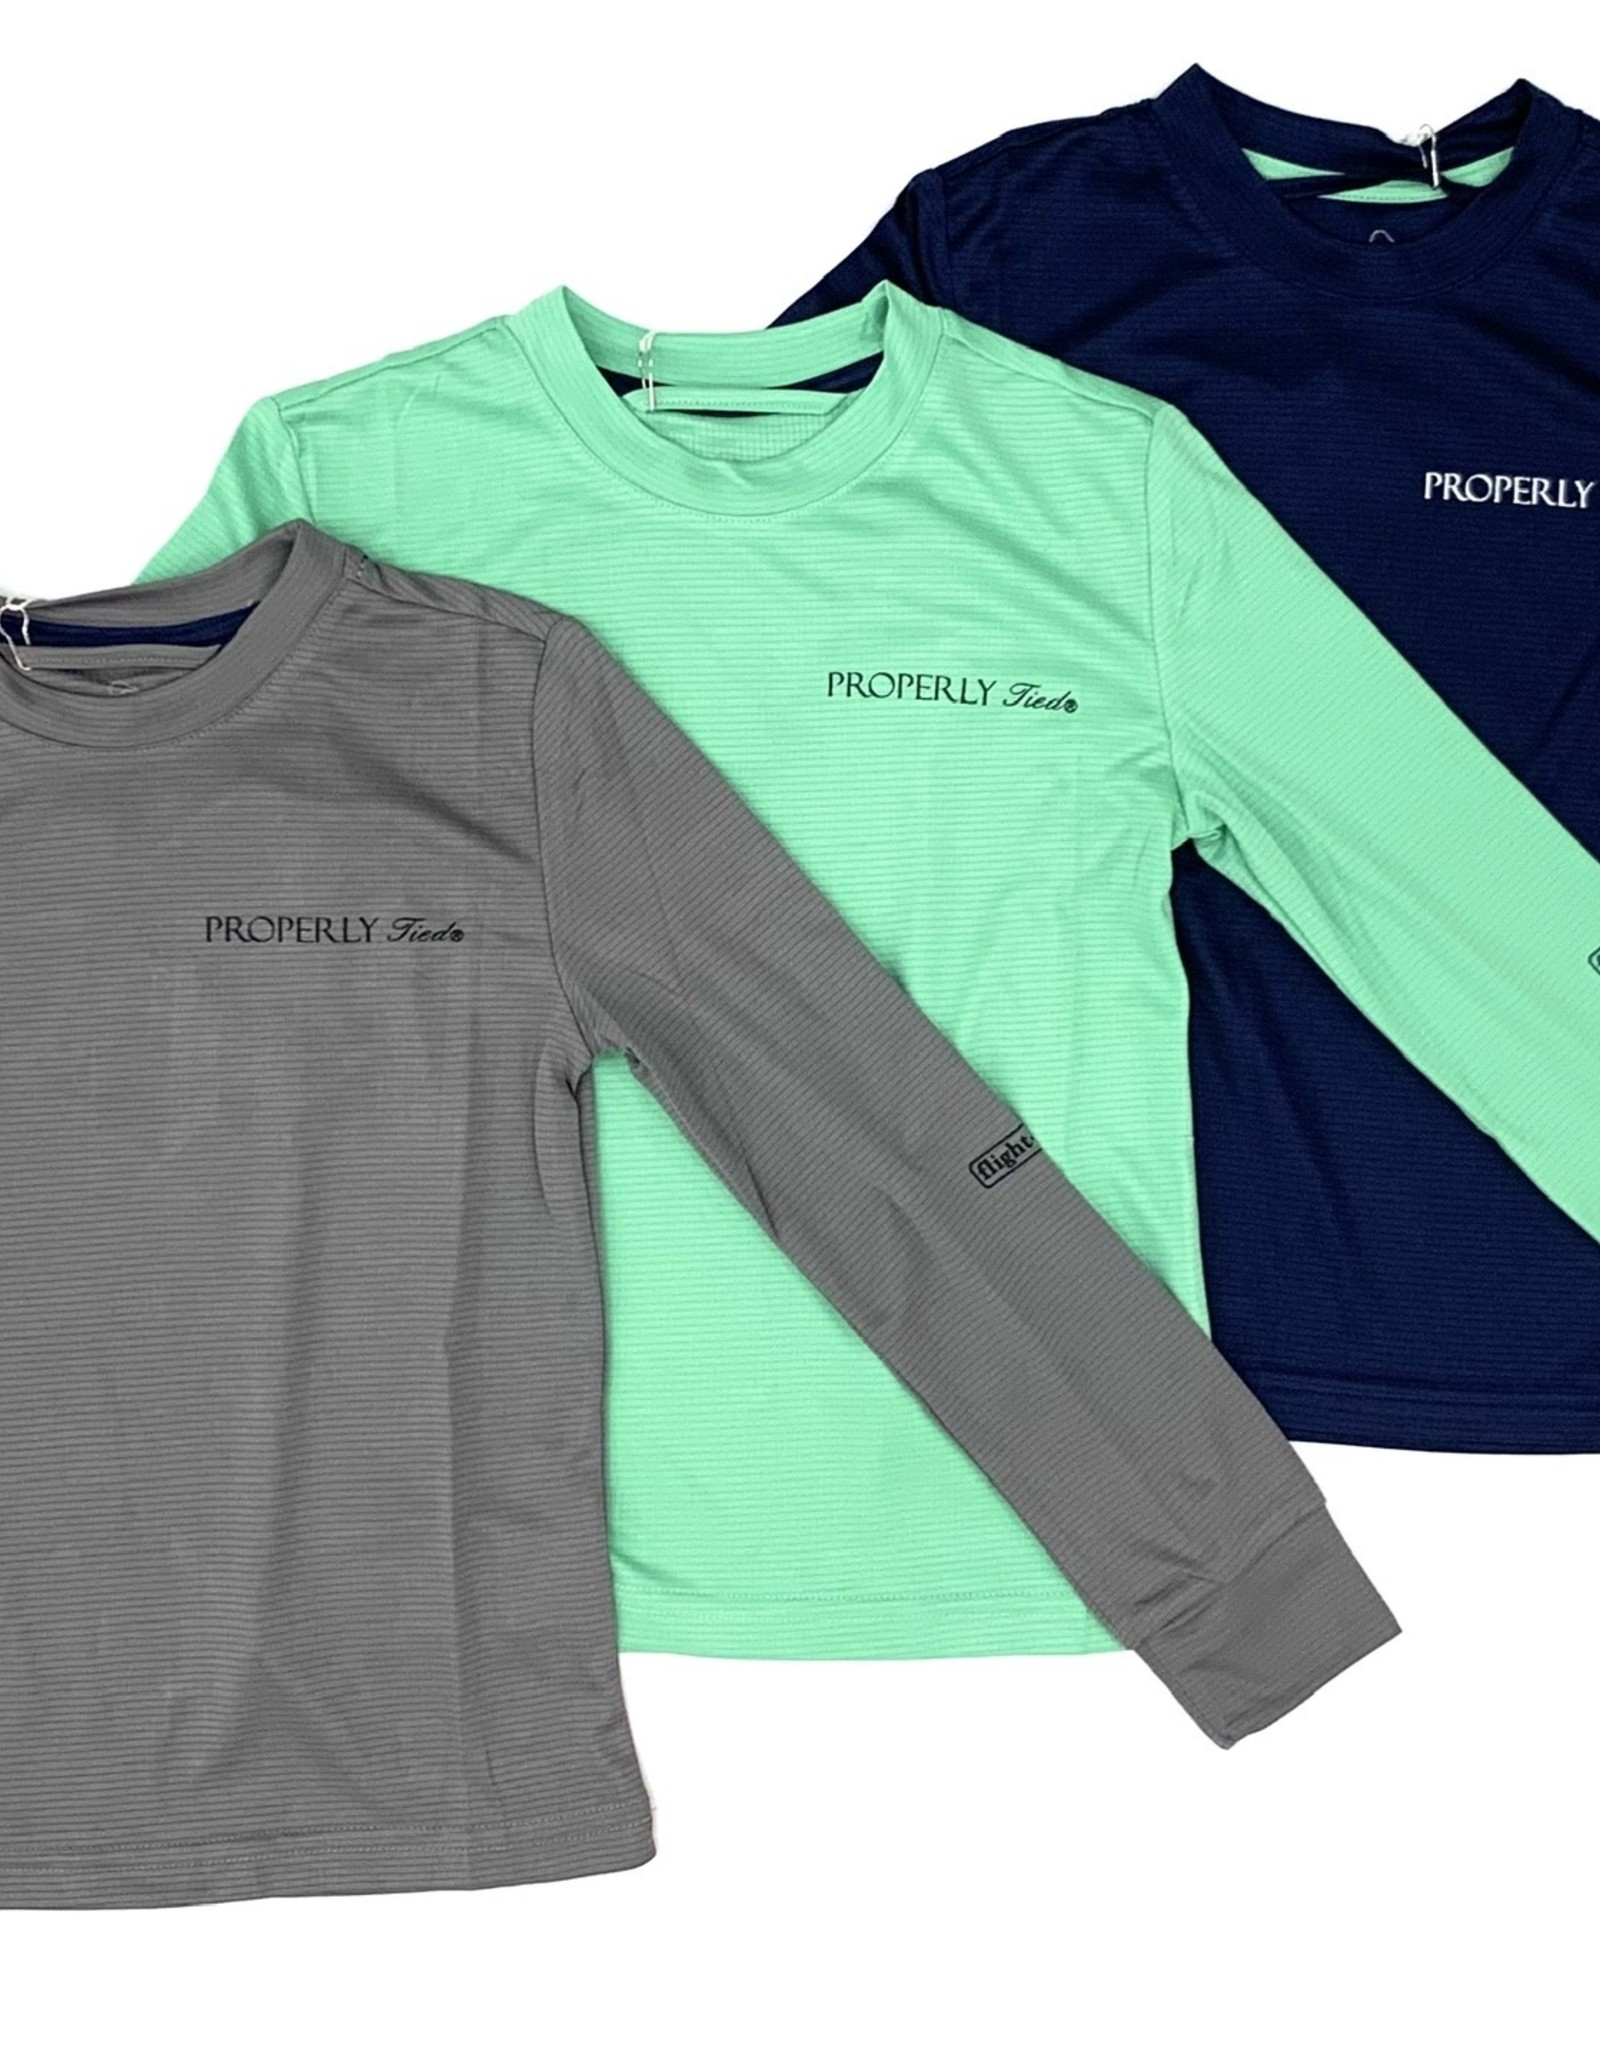 Properly Tied Flight Cool Tech Long Sleeve Shirt